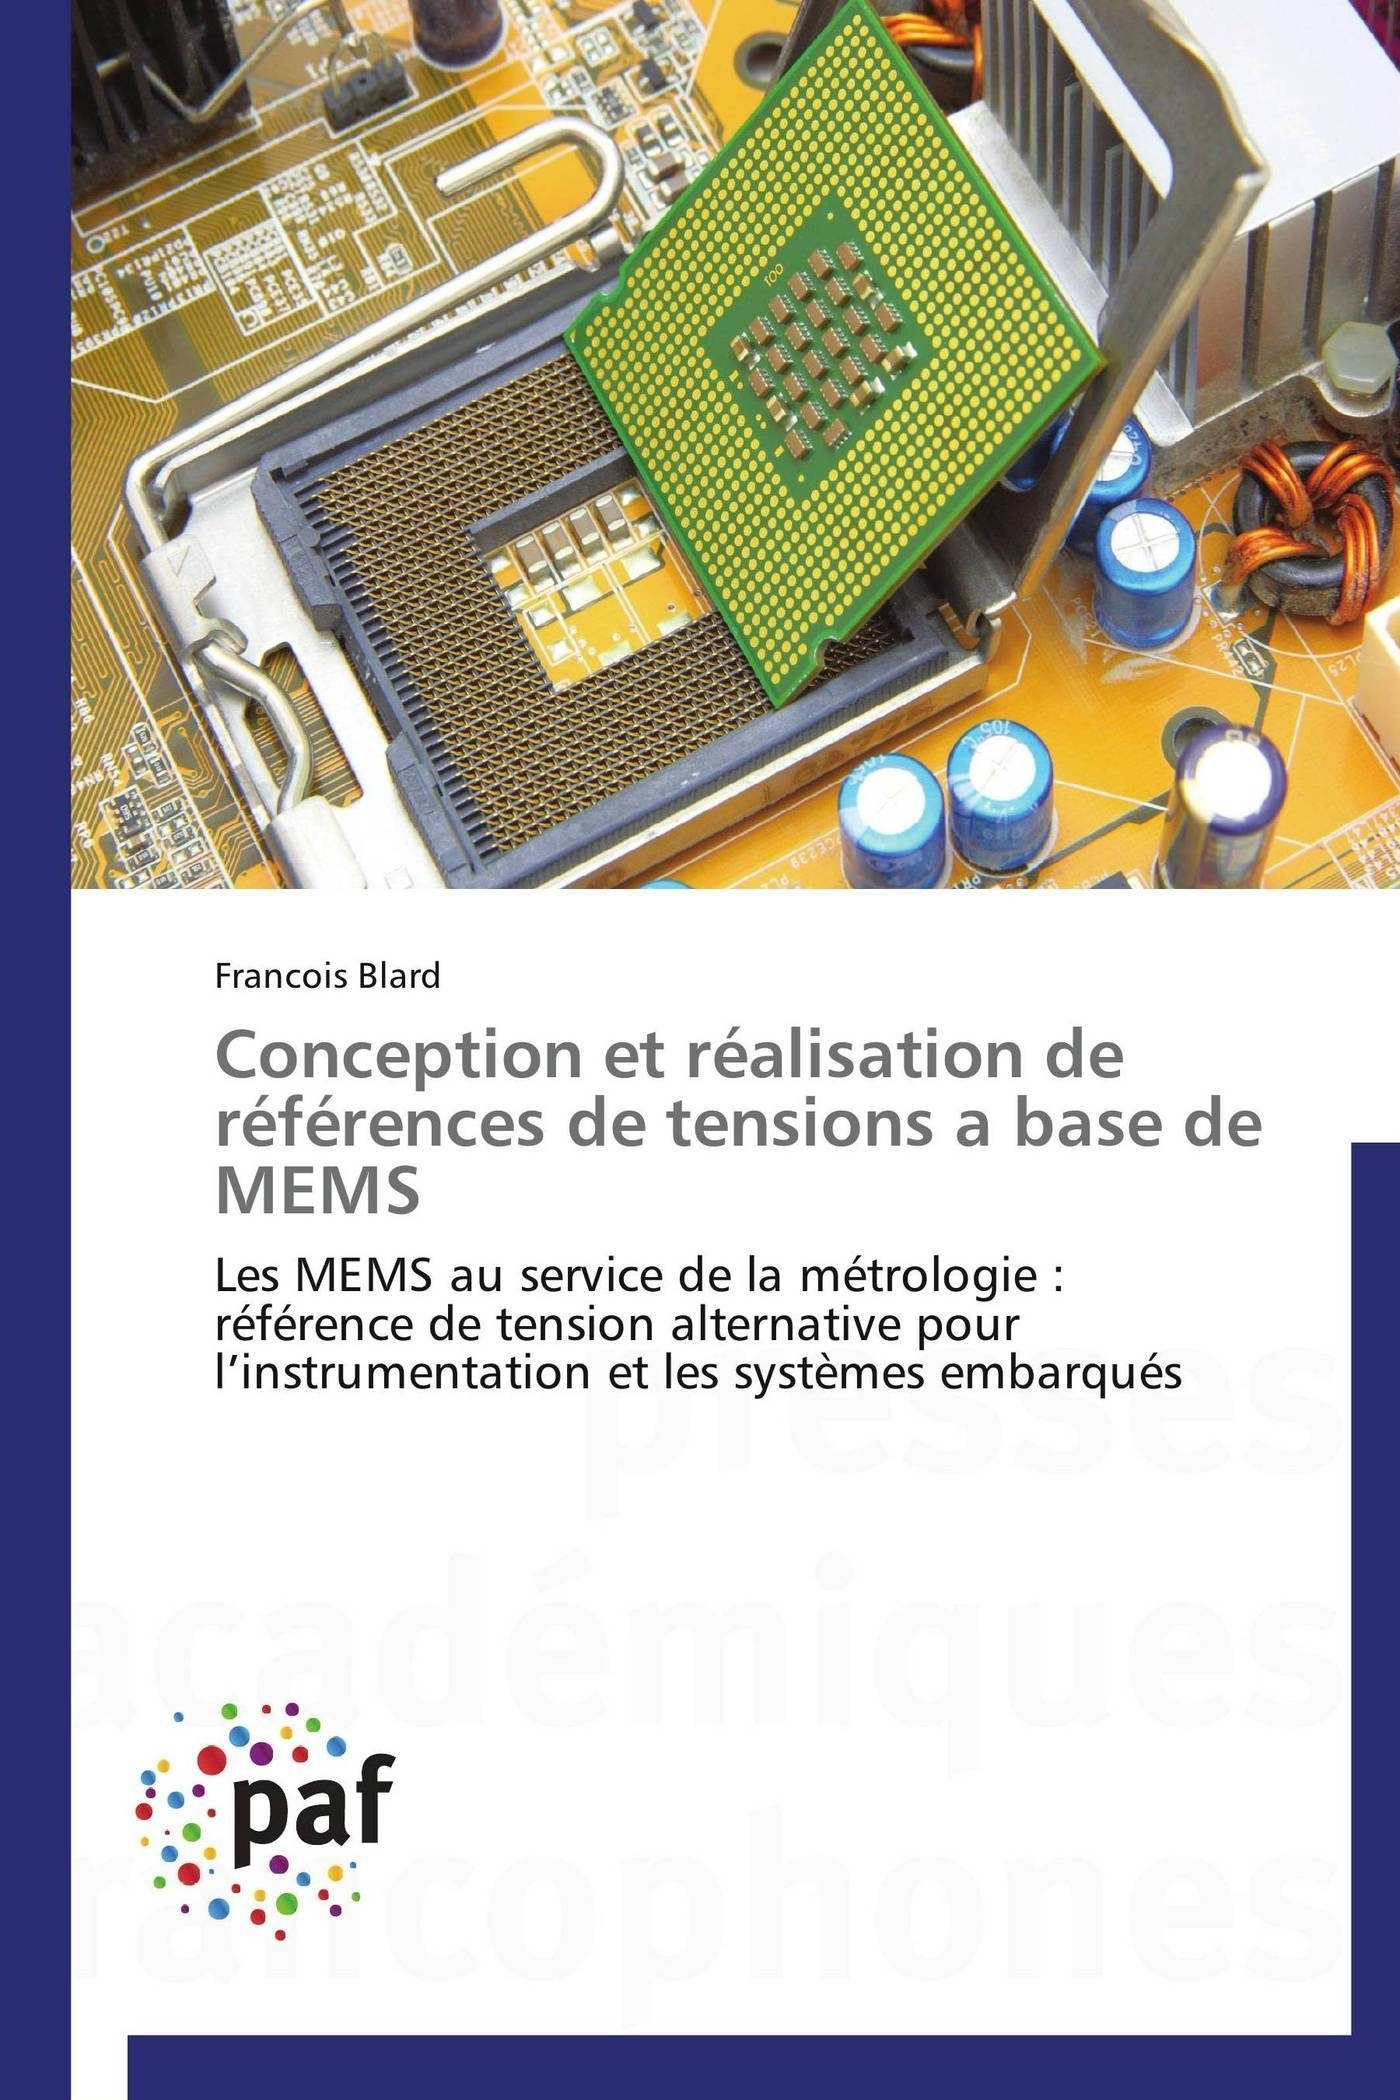 CONCEPTION ET REALISATION DE REFERENCES DE TENSIONS A BASE DE MEMS